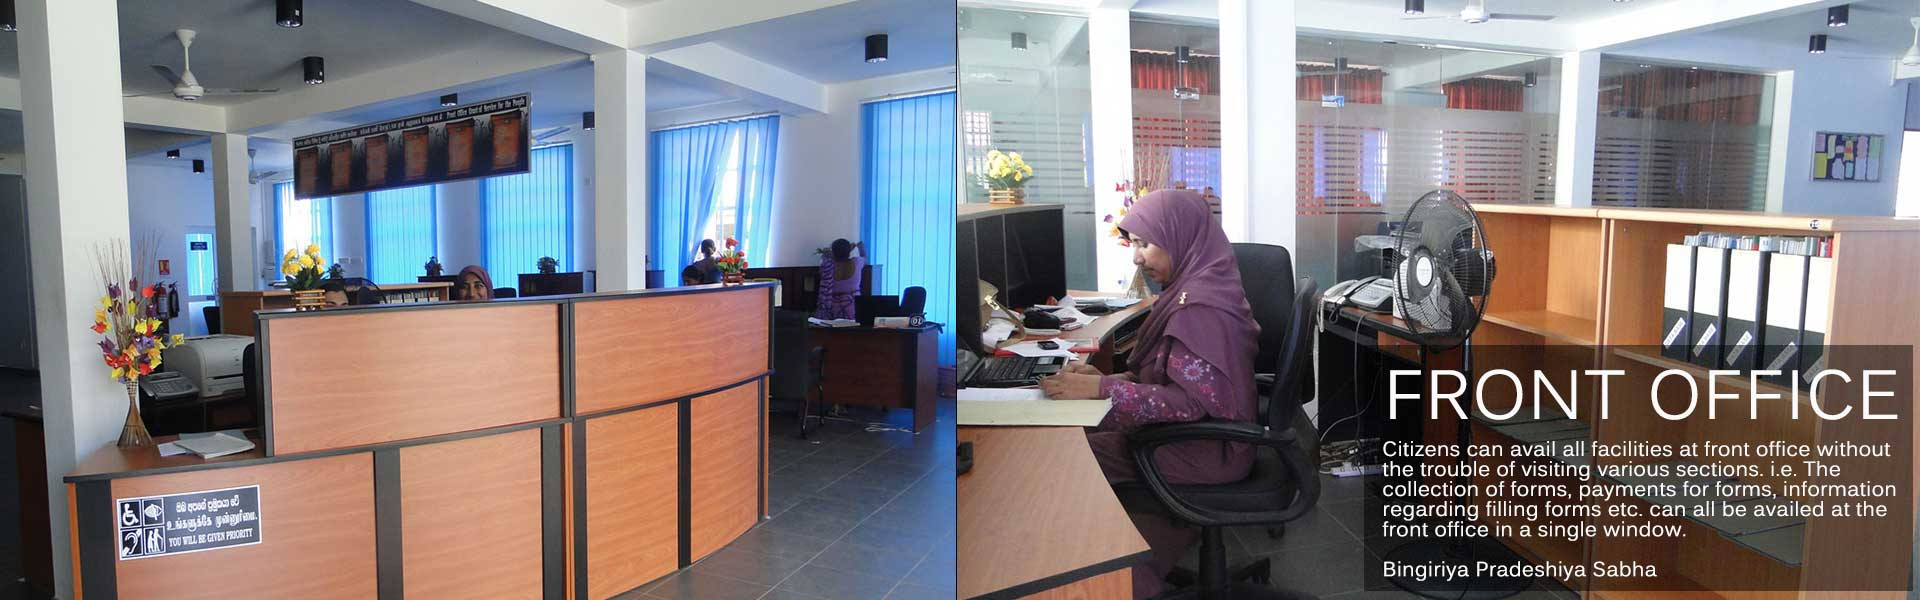 Bingiriya Front Office